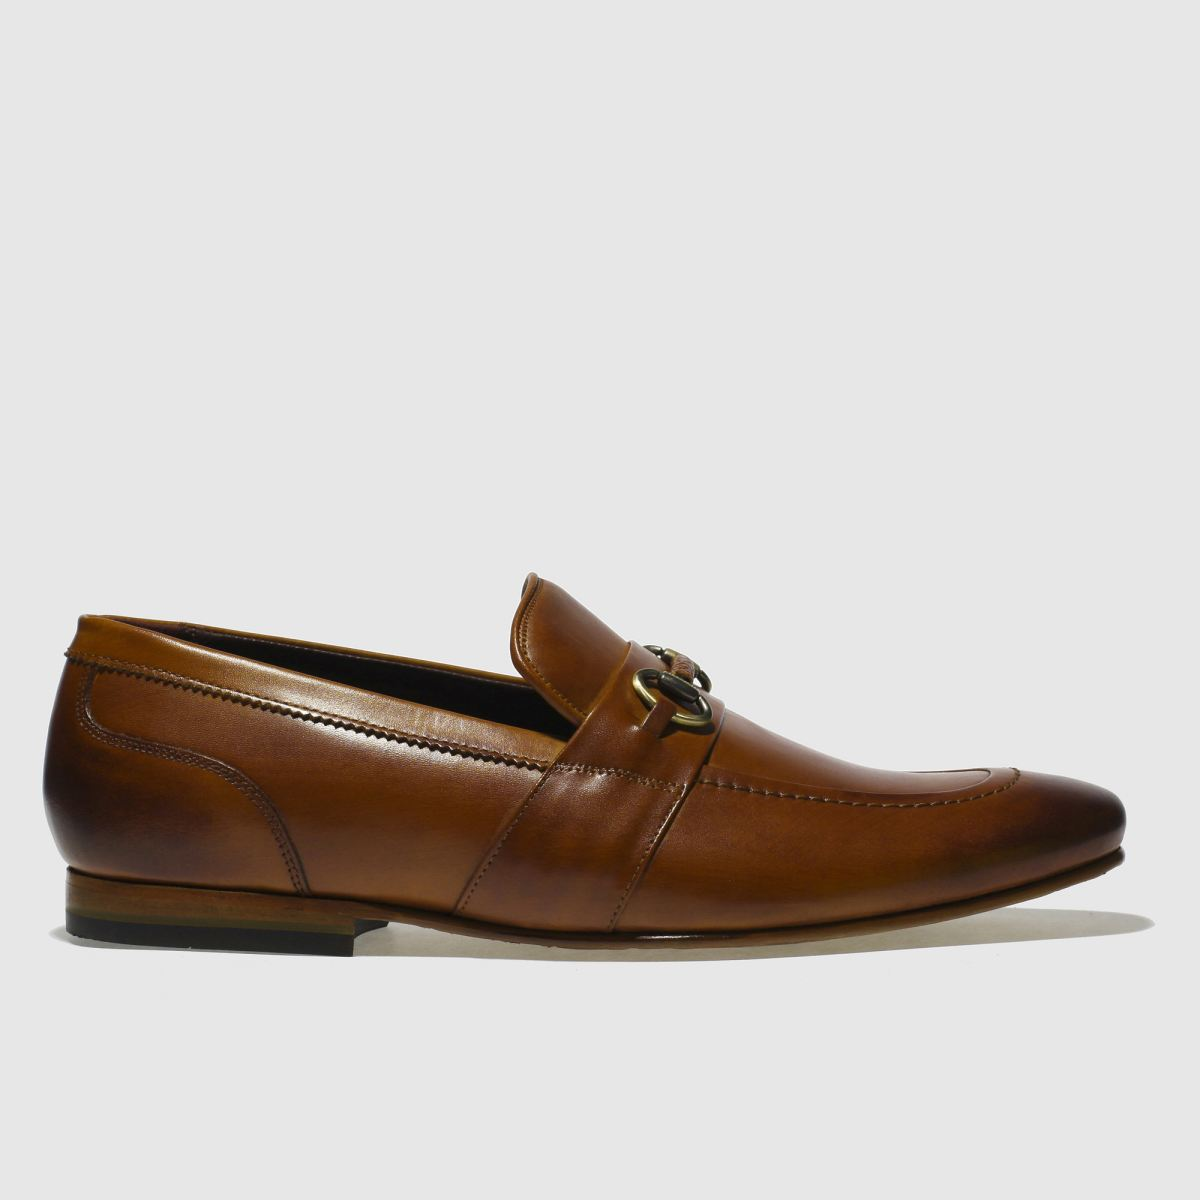 Ted Baker Tan Daiser Shoes